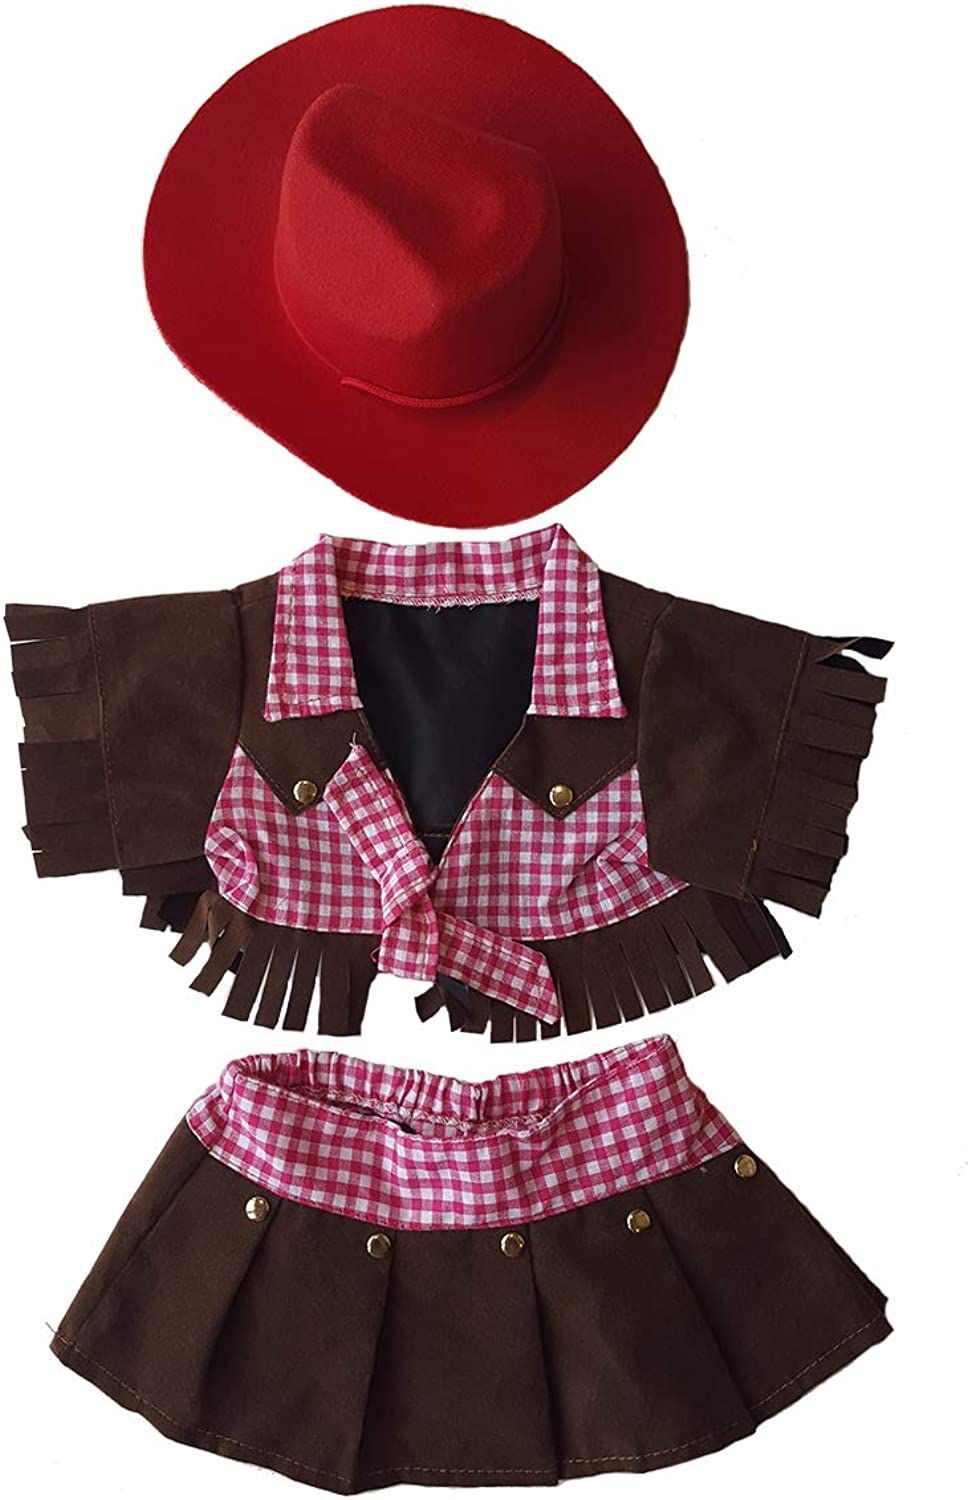 Cowgirl Outfit Teddy Bear Clothes Fit 14 - 18 Build-a-bear, Vermont Teddy Bears, and Make Your Own Stuffed Animals by Stuffems Toy Shop